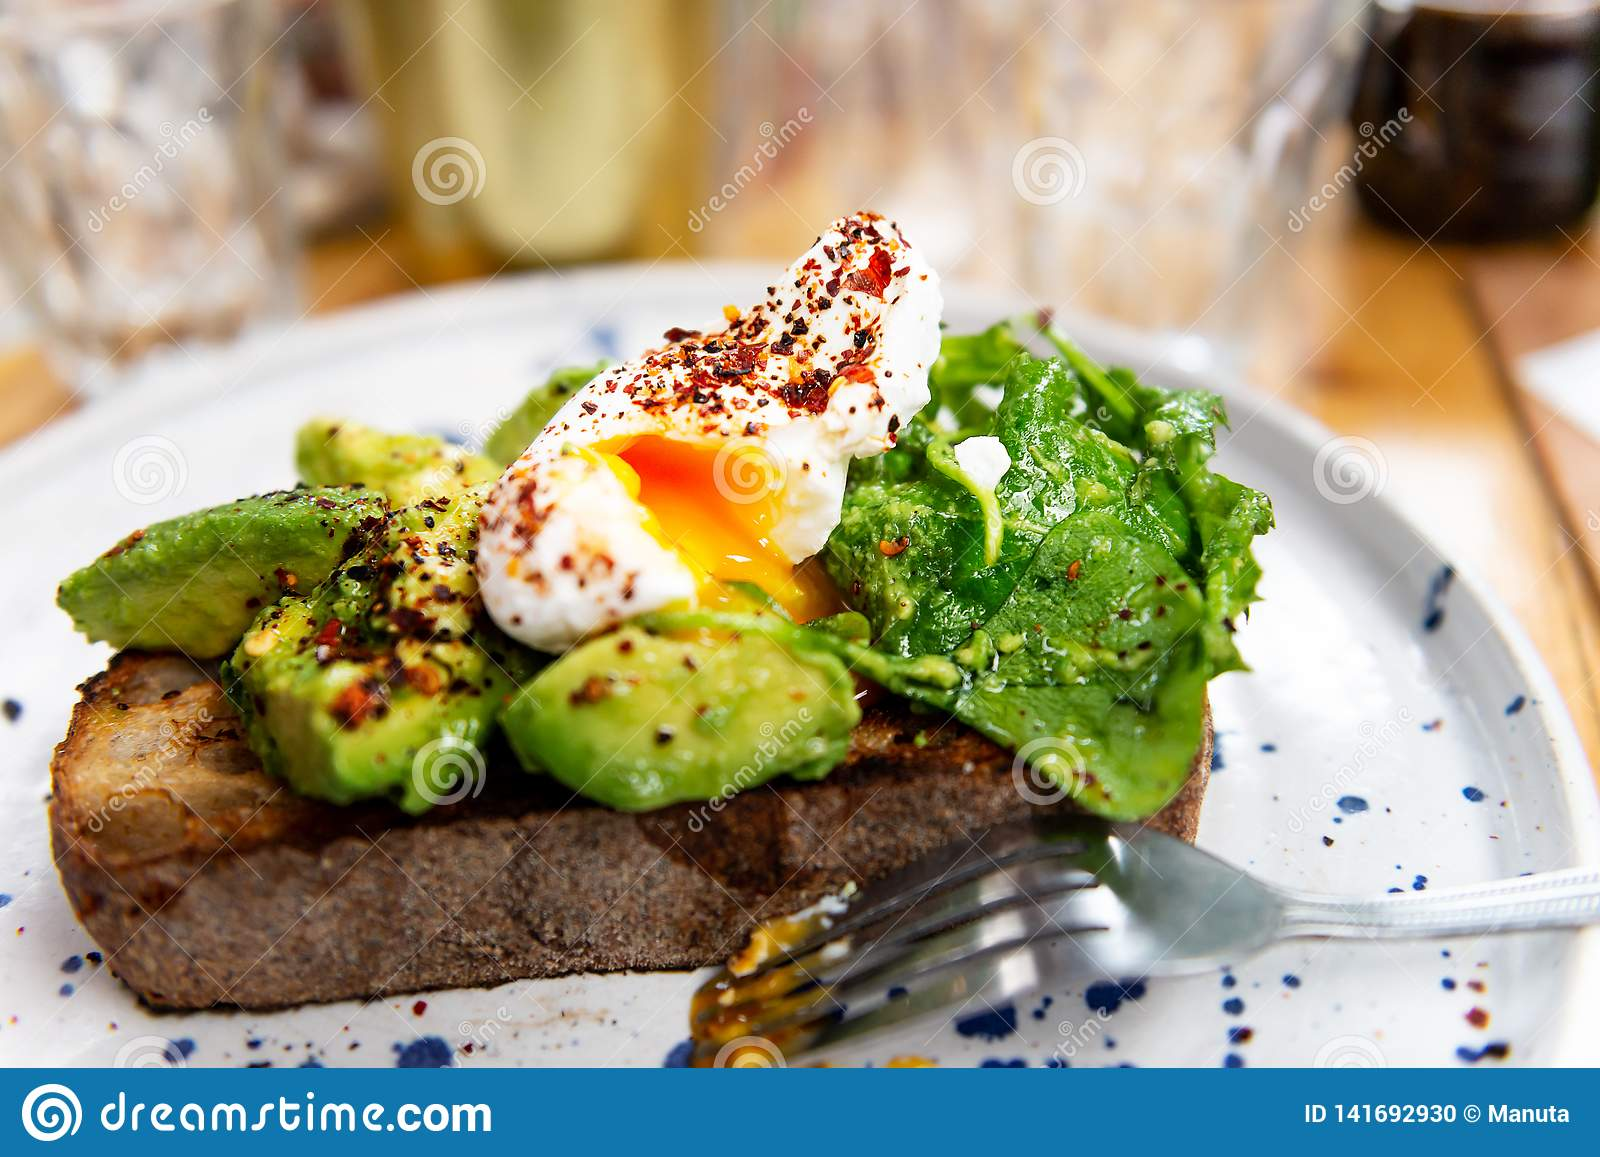 Toast With Avocado And Poached Egg, Perfect And Healthy